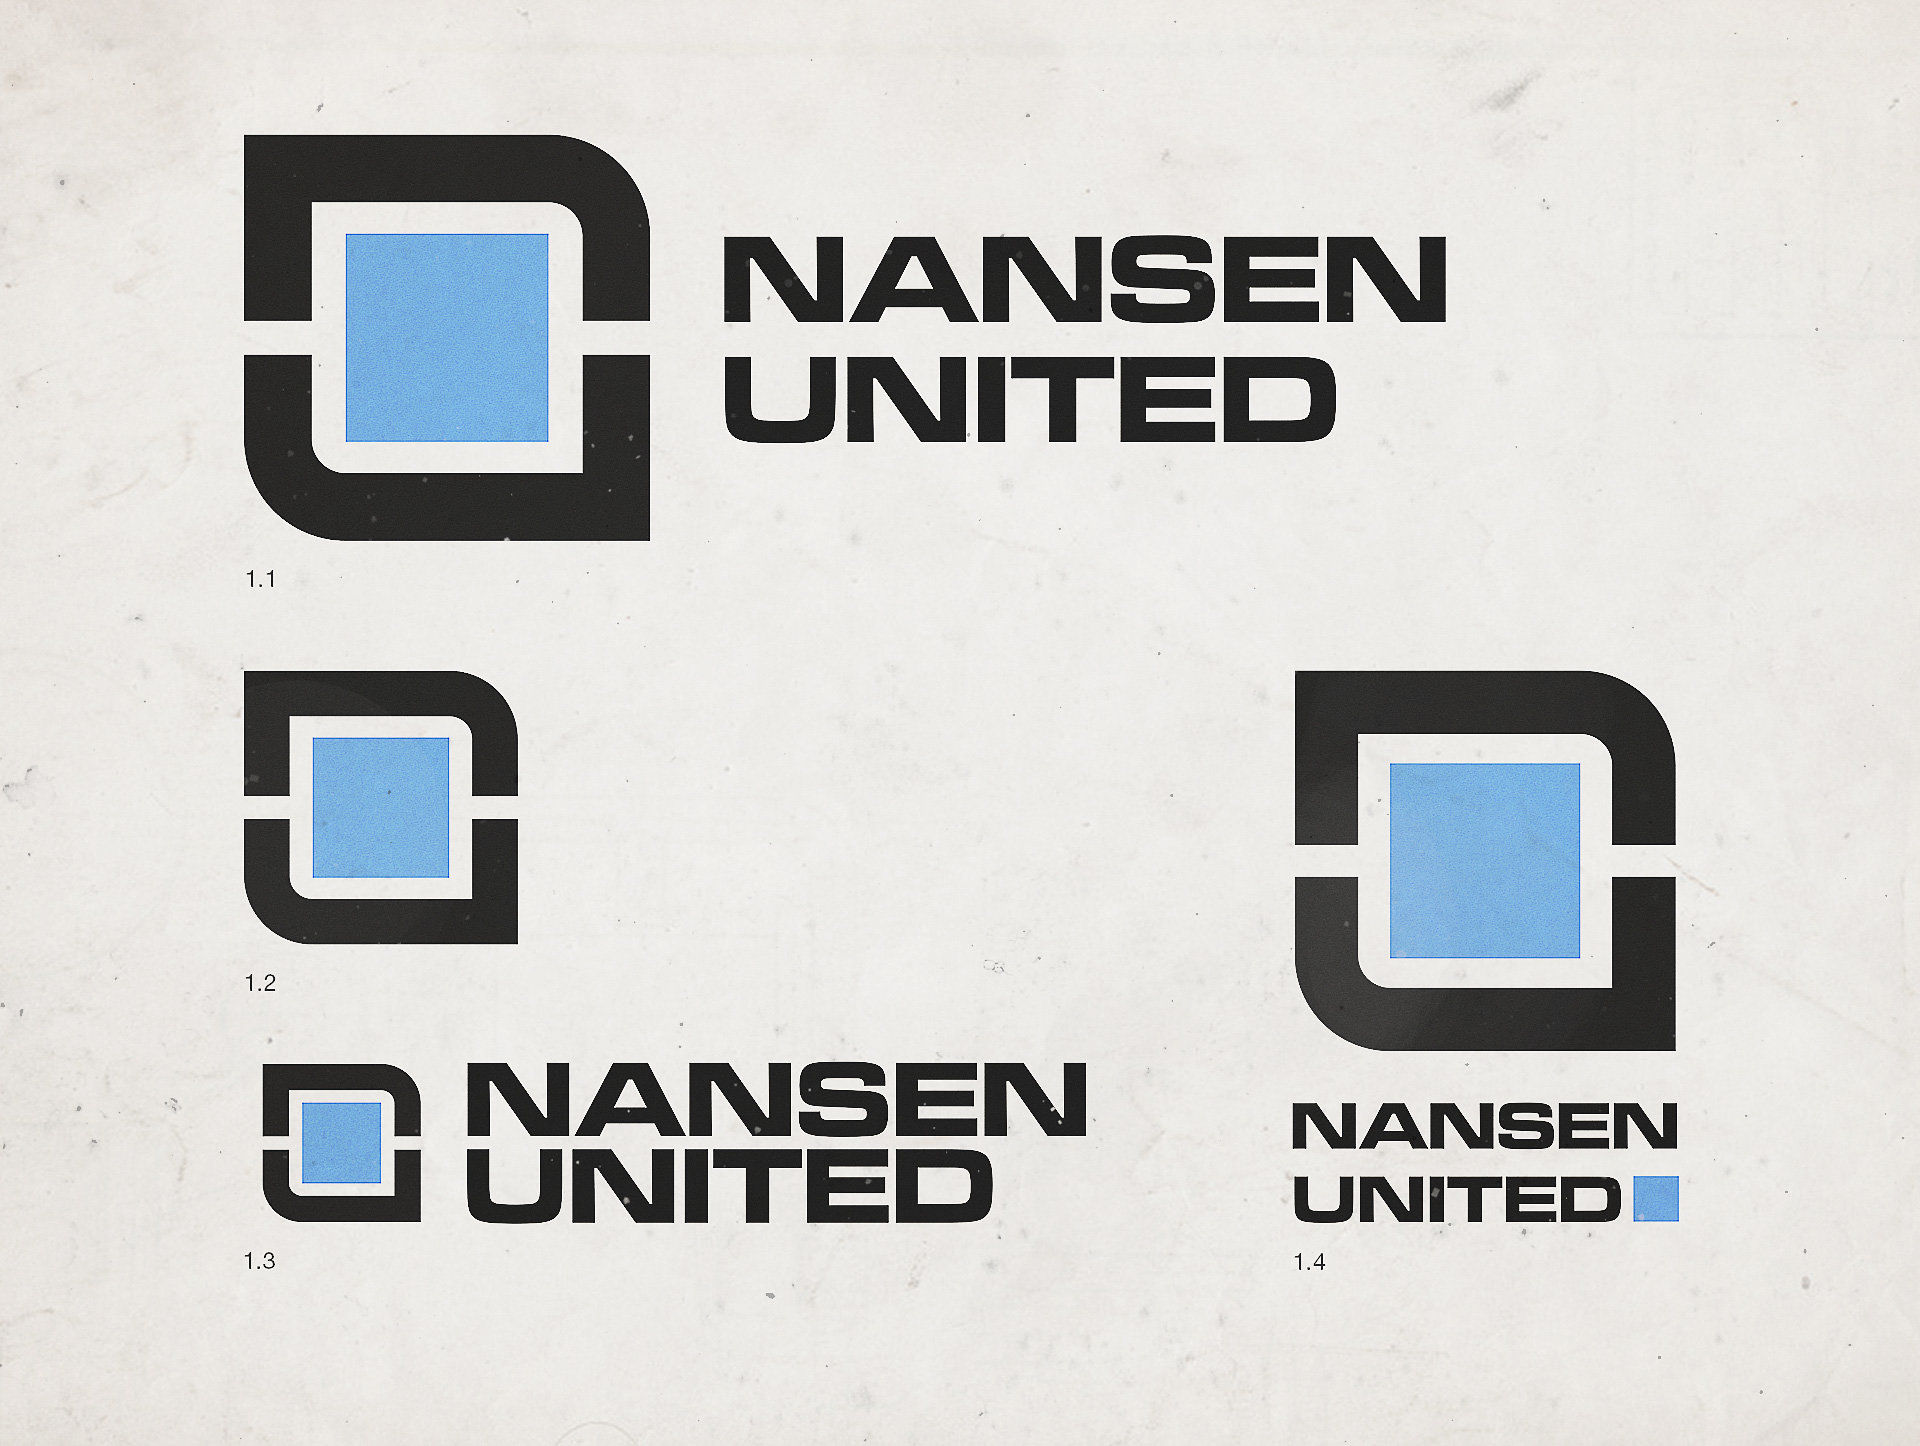 Mac rebisz 20150224 nansen united 001